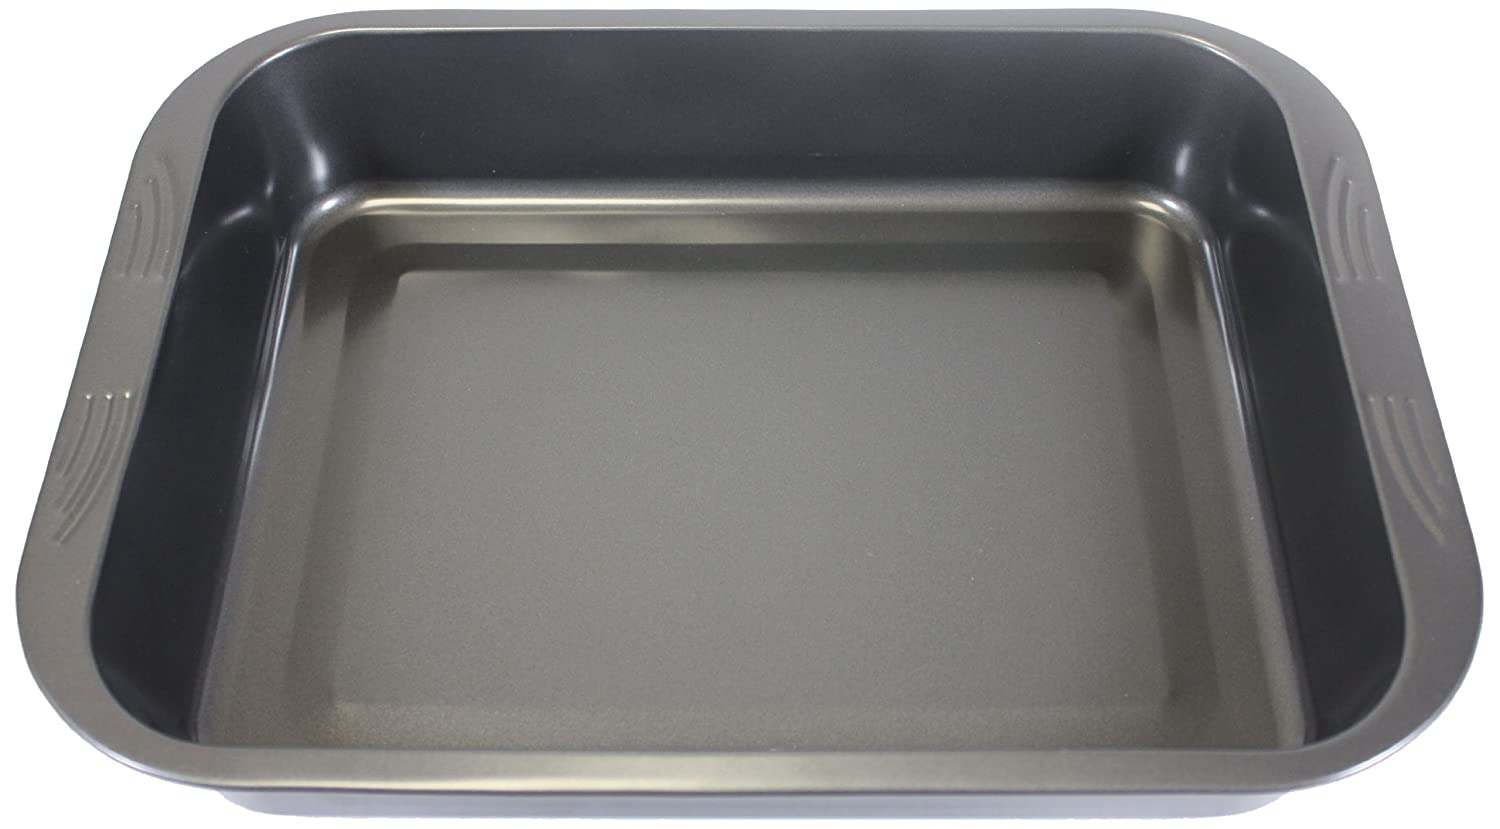 Everyday Baking Prochef Large Deep Roasting Tray, Premium Quality, Easy to Clean with Non-Stick Coating Prochef Everyday KB1033